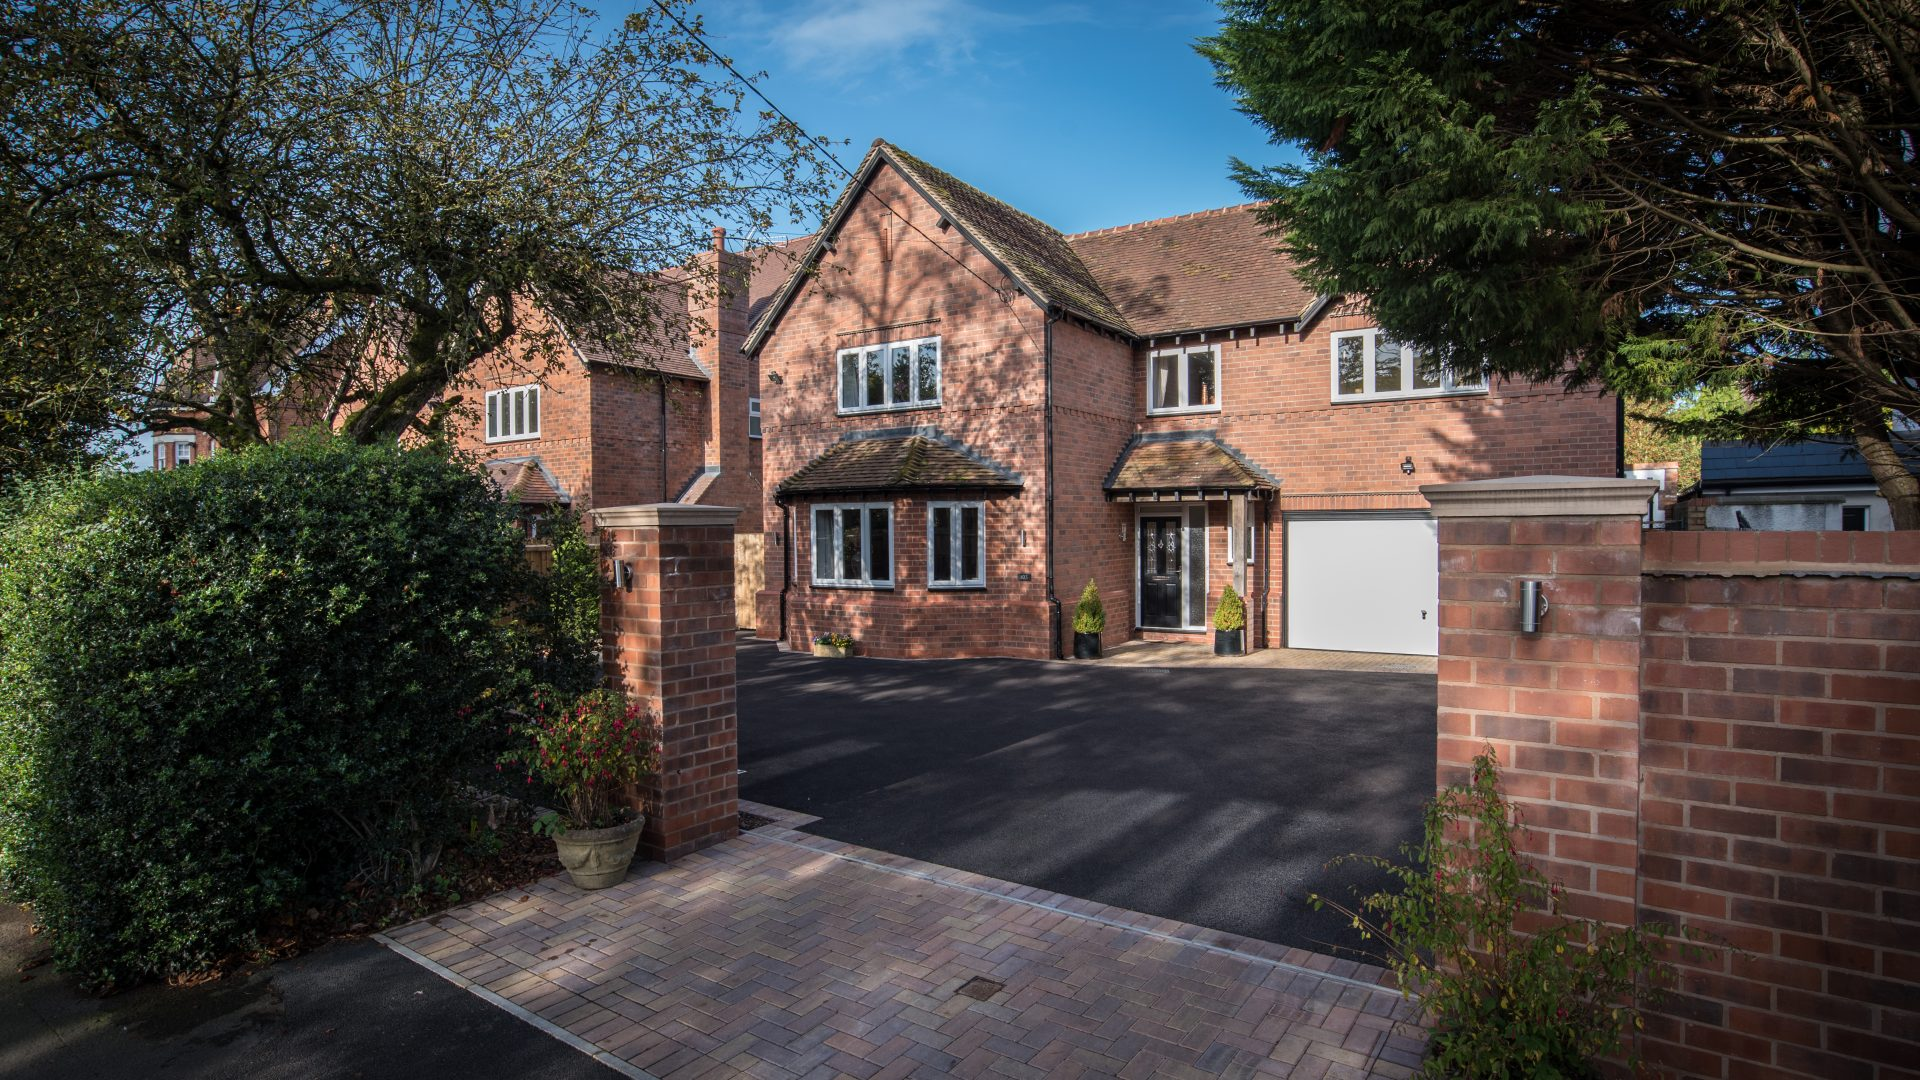 Avenue Road, Dorridge for sale with Mr and Mrs Clarke estate agent